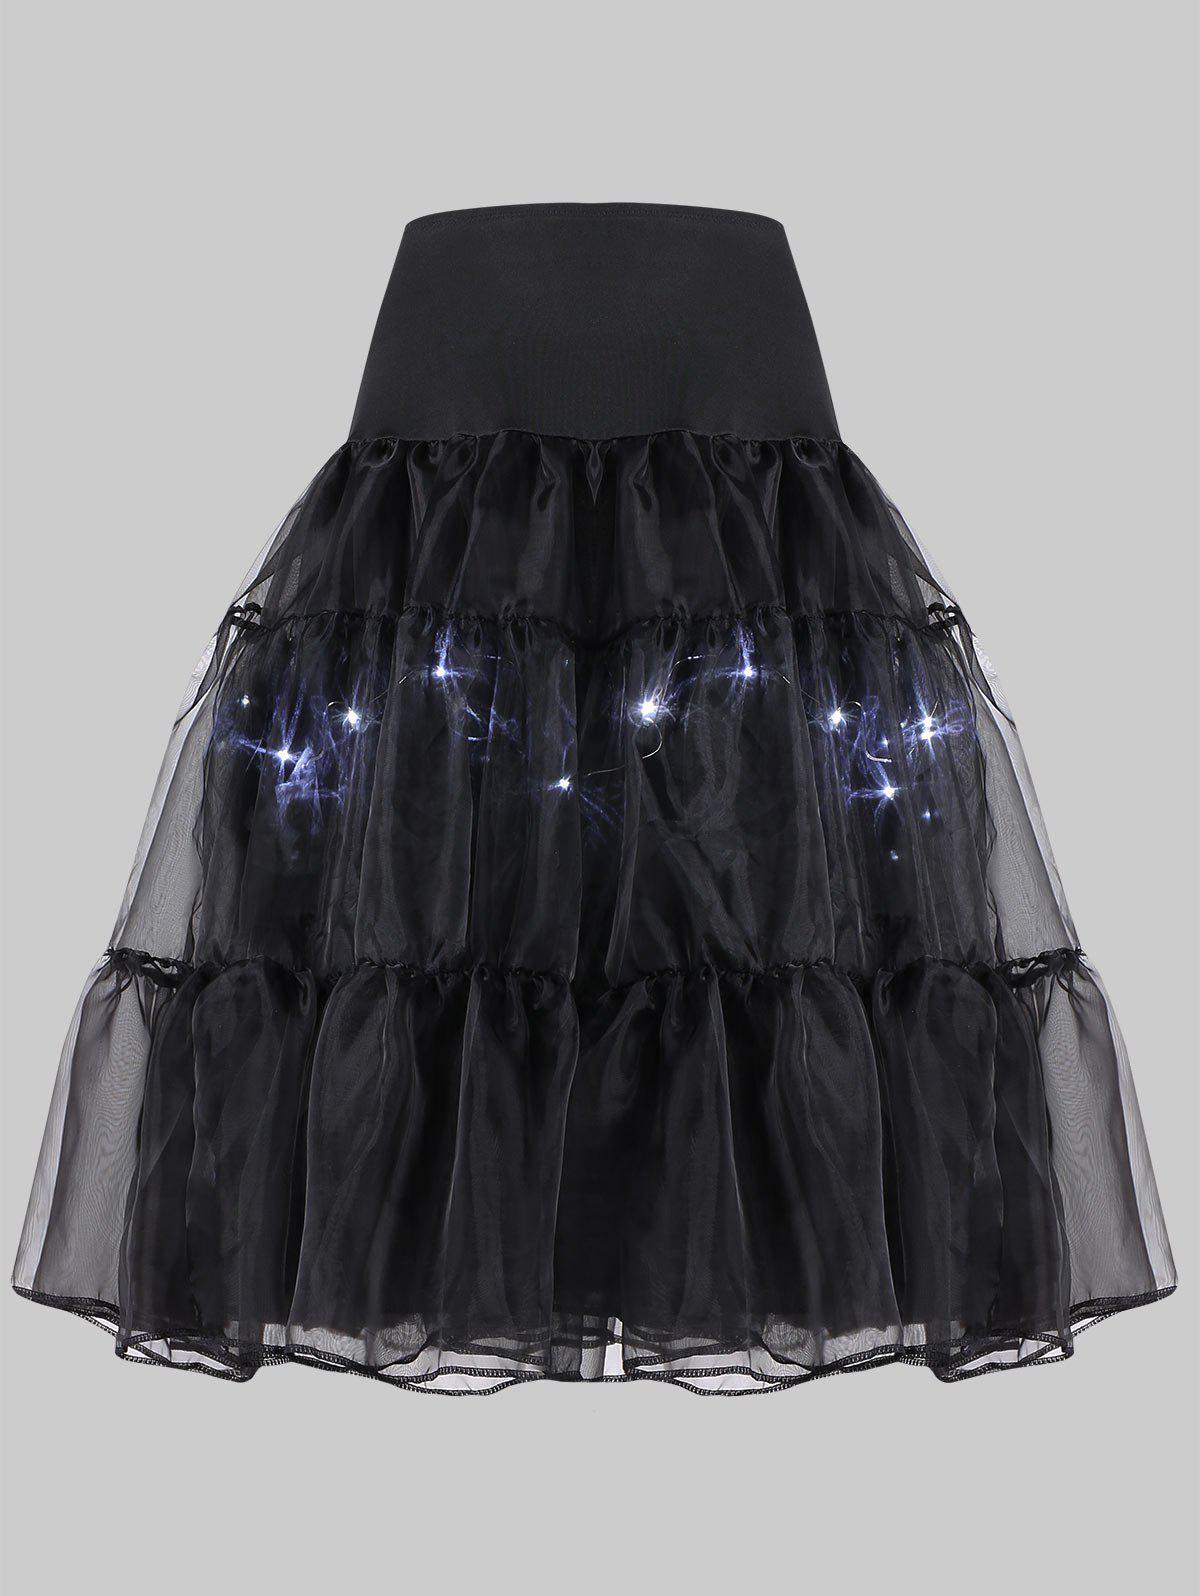 Plus Size Cosplay Light Up Party SkirtWOMEN<br><br>Size: 6XL; Color: BLACK; Material: Polyester; Pattern Type: Solid; Embellishment: Ruffles; Weight: 0.2500kg; Package Contents: 1 x Skirt;